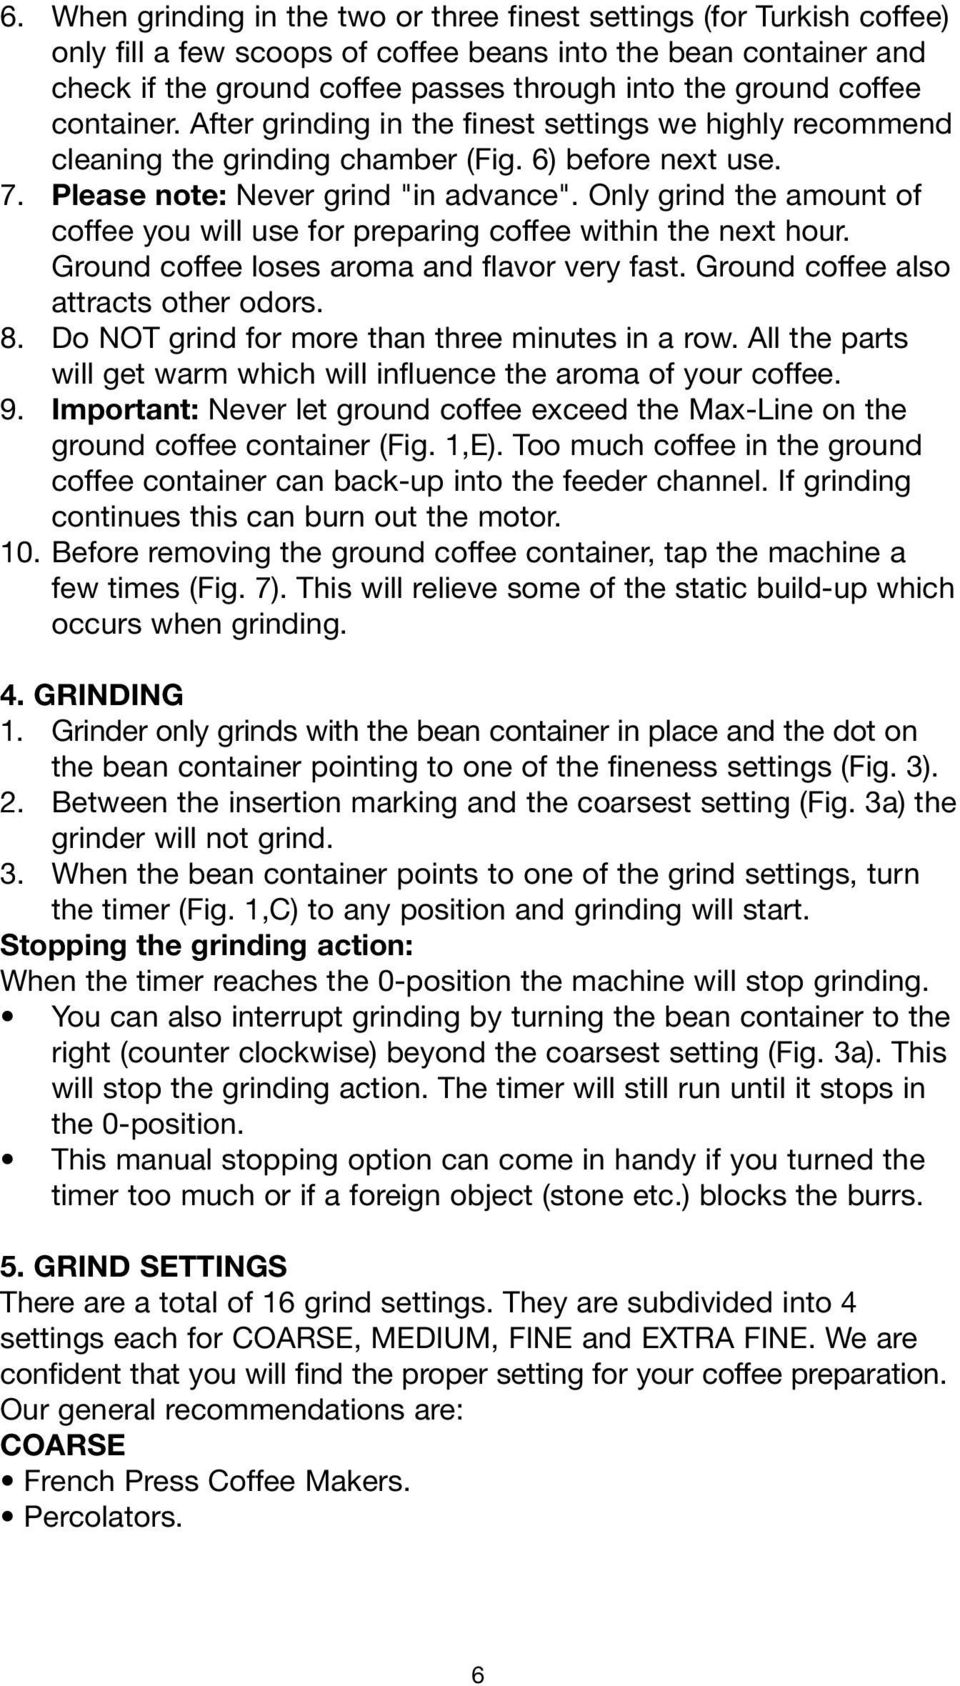 Only grind the amount of coffee you will use for preparing coffee within the next hour. Ground coffee loses aroma and flavor very fast. Ground coffee also attracts other odors. 8.